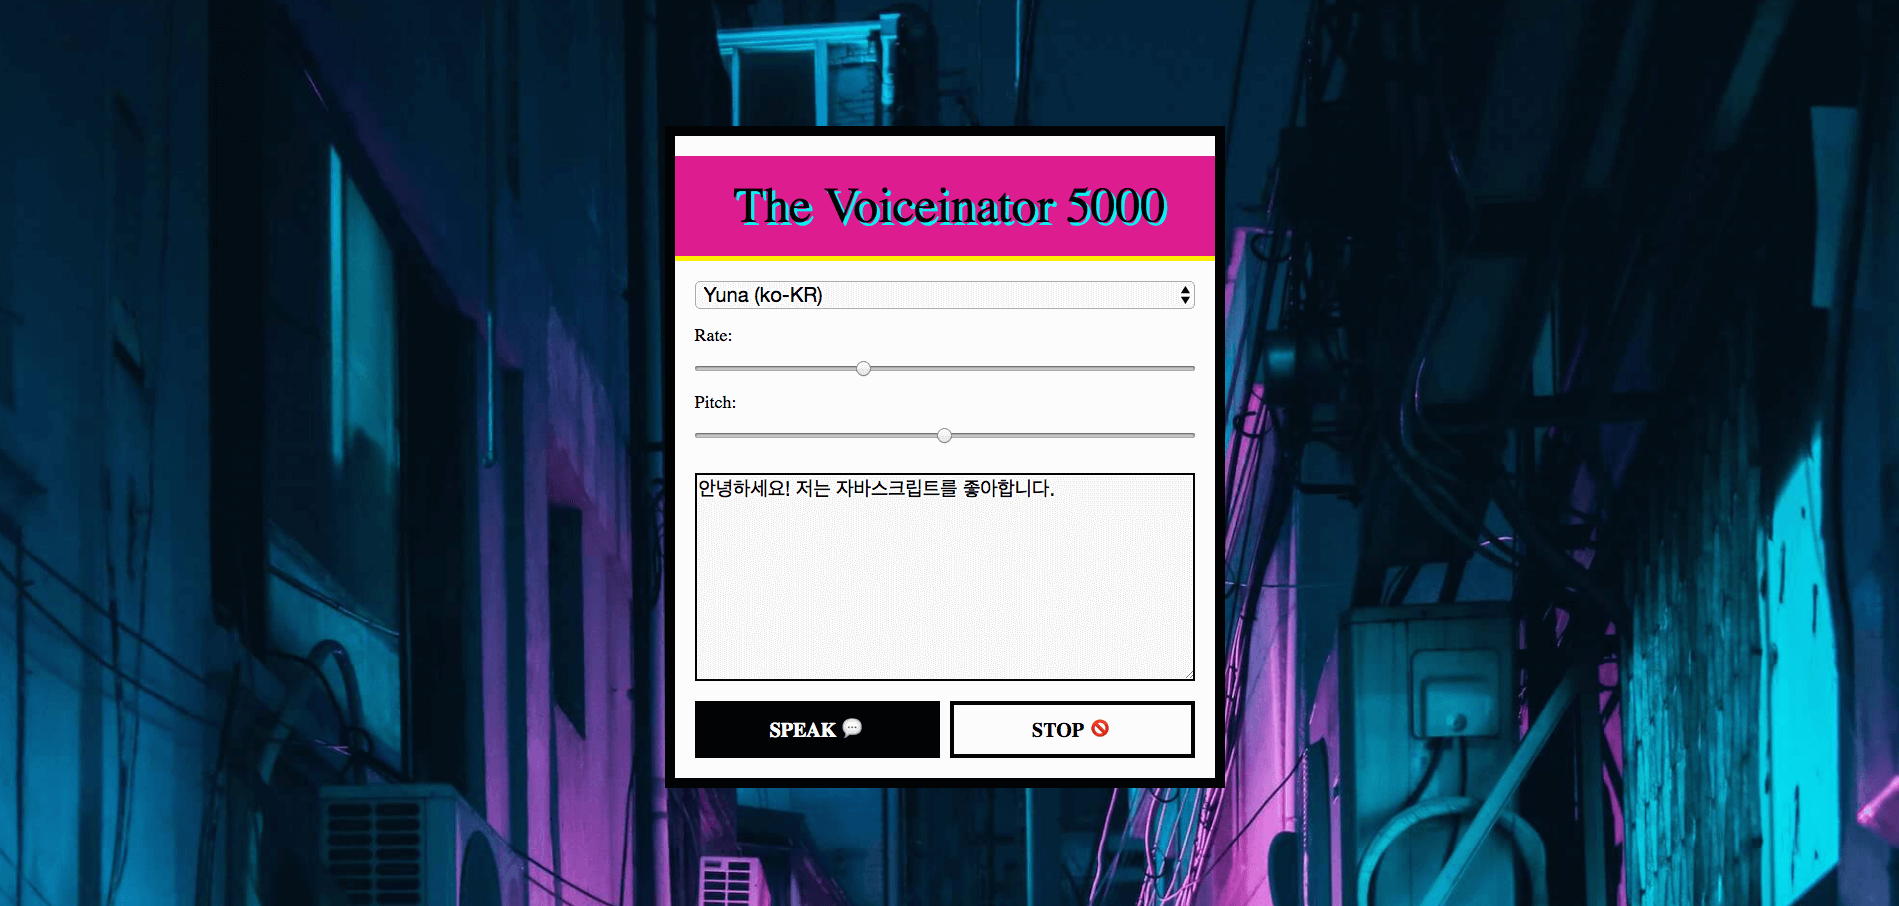 The Voiceinator 5000